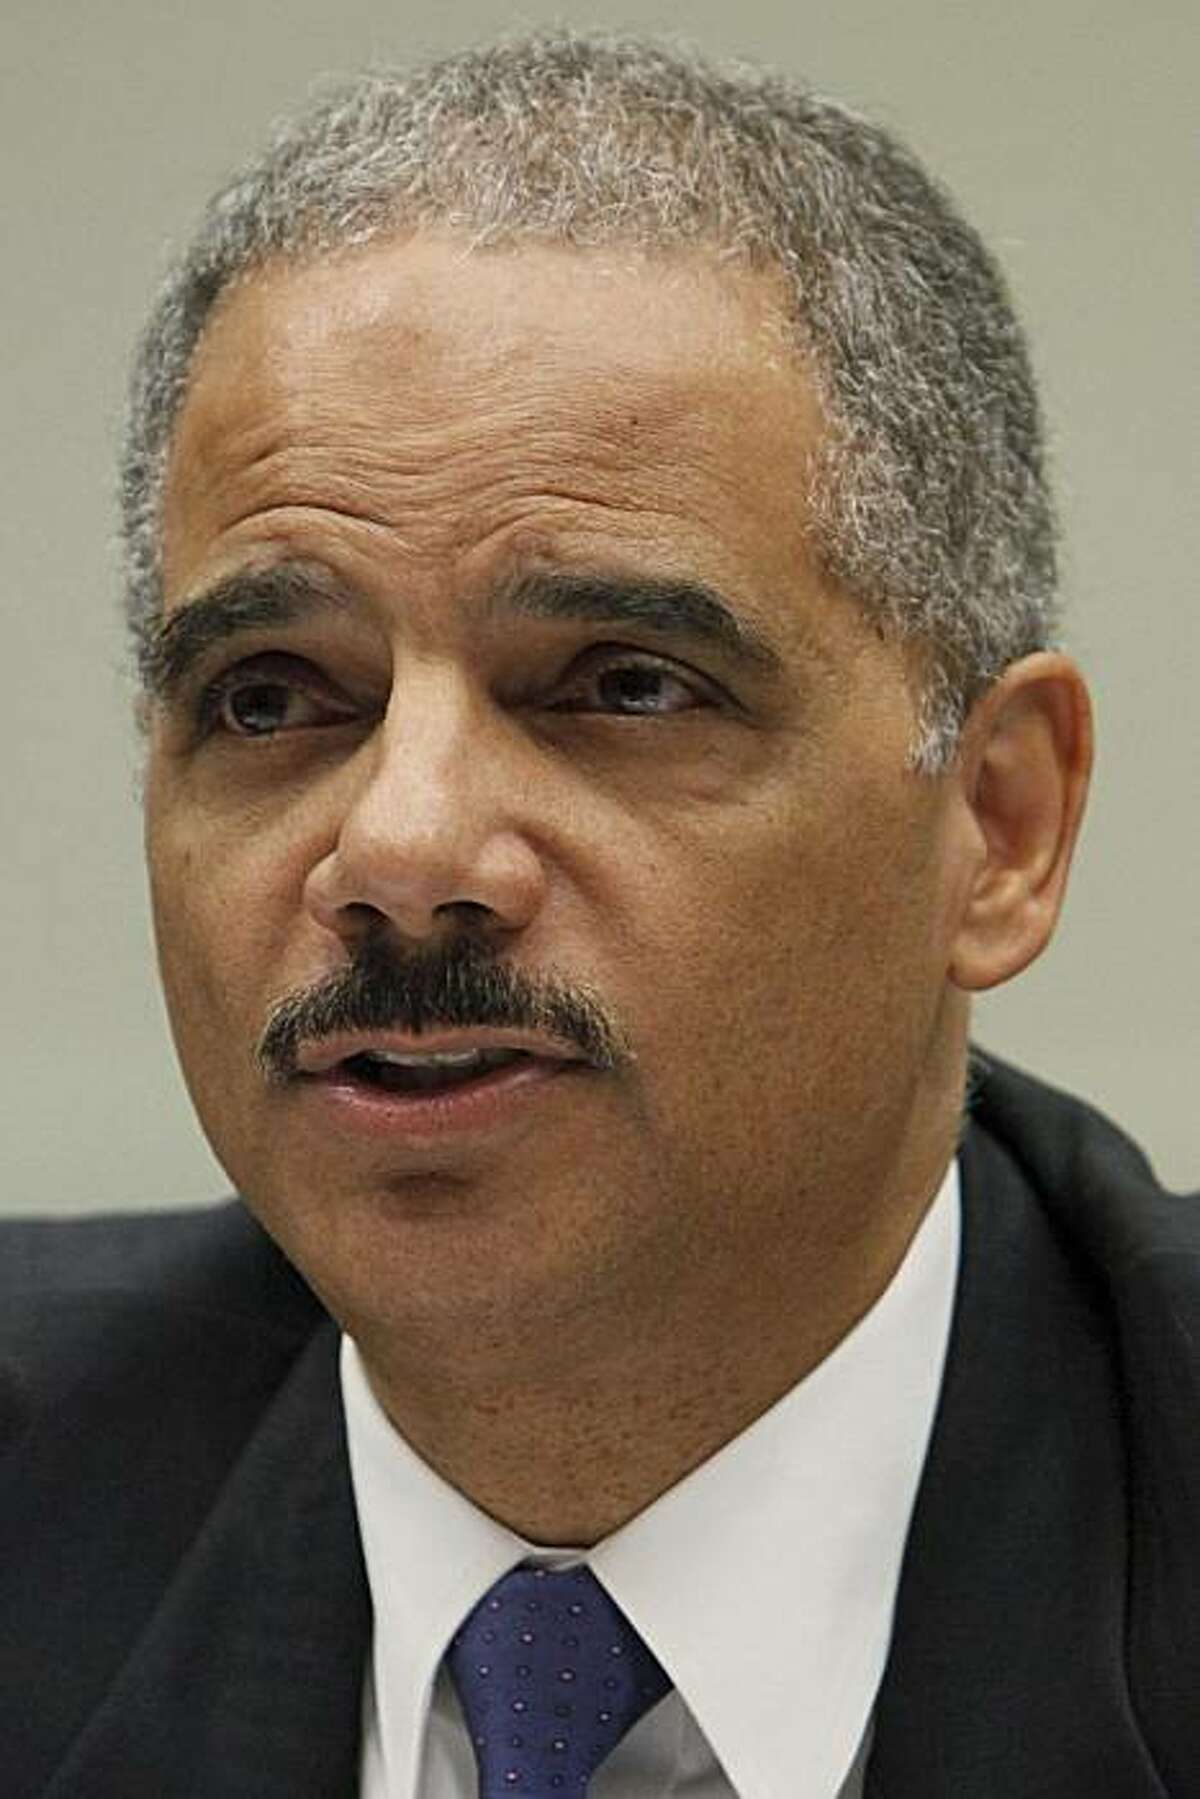 Attorney General Eric Holder in this May 13, 2010 photo on Capitol Hill in Washington.